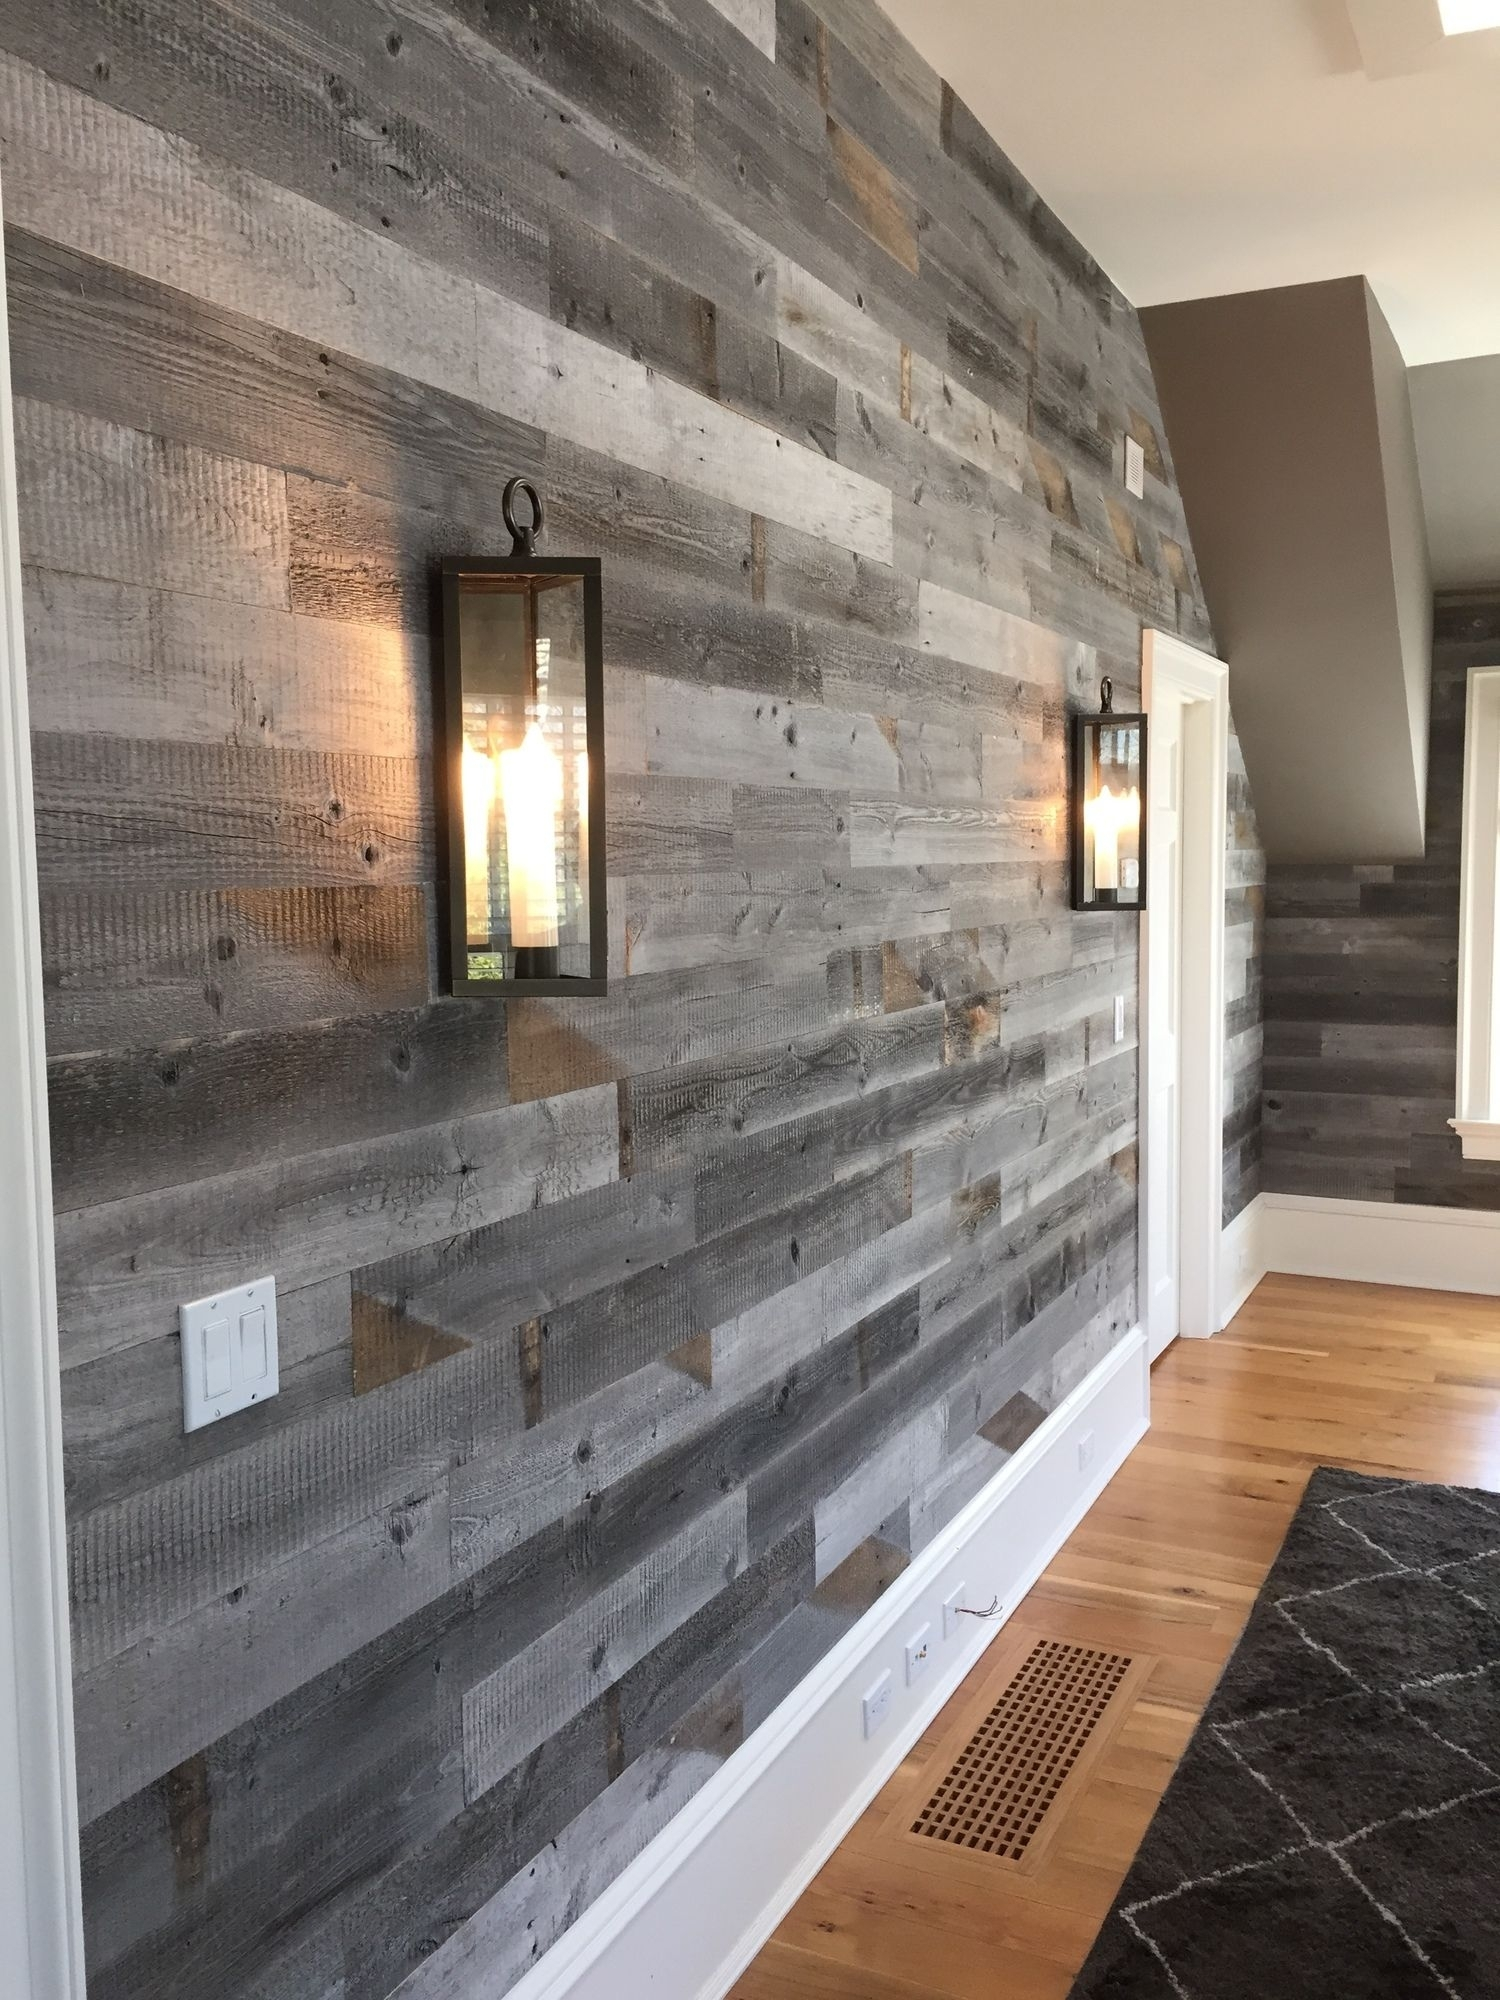 Reclaimed Weathered Wood | Wood Walls, Compliments And Woods Pertaining To Most Popular Reclaimed Wood Wall Accents (View 8 of 15)